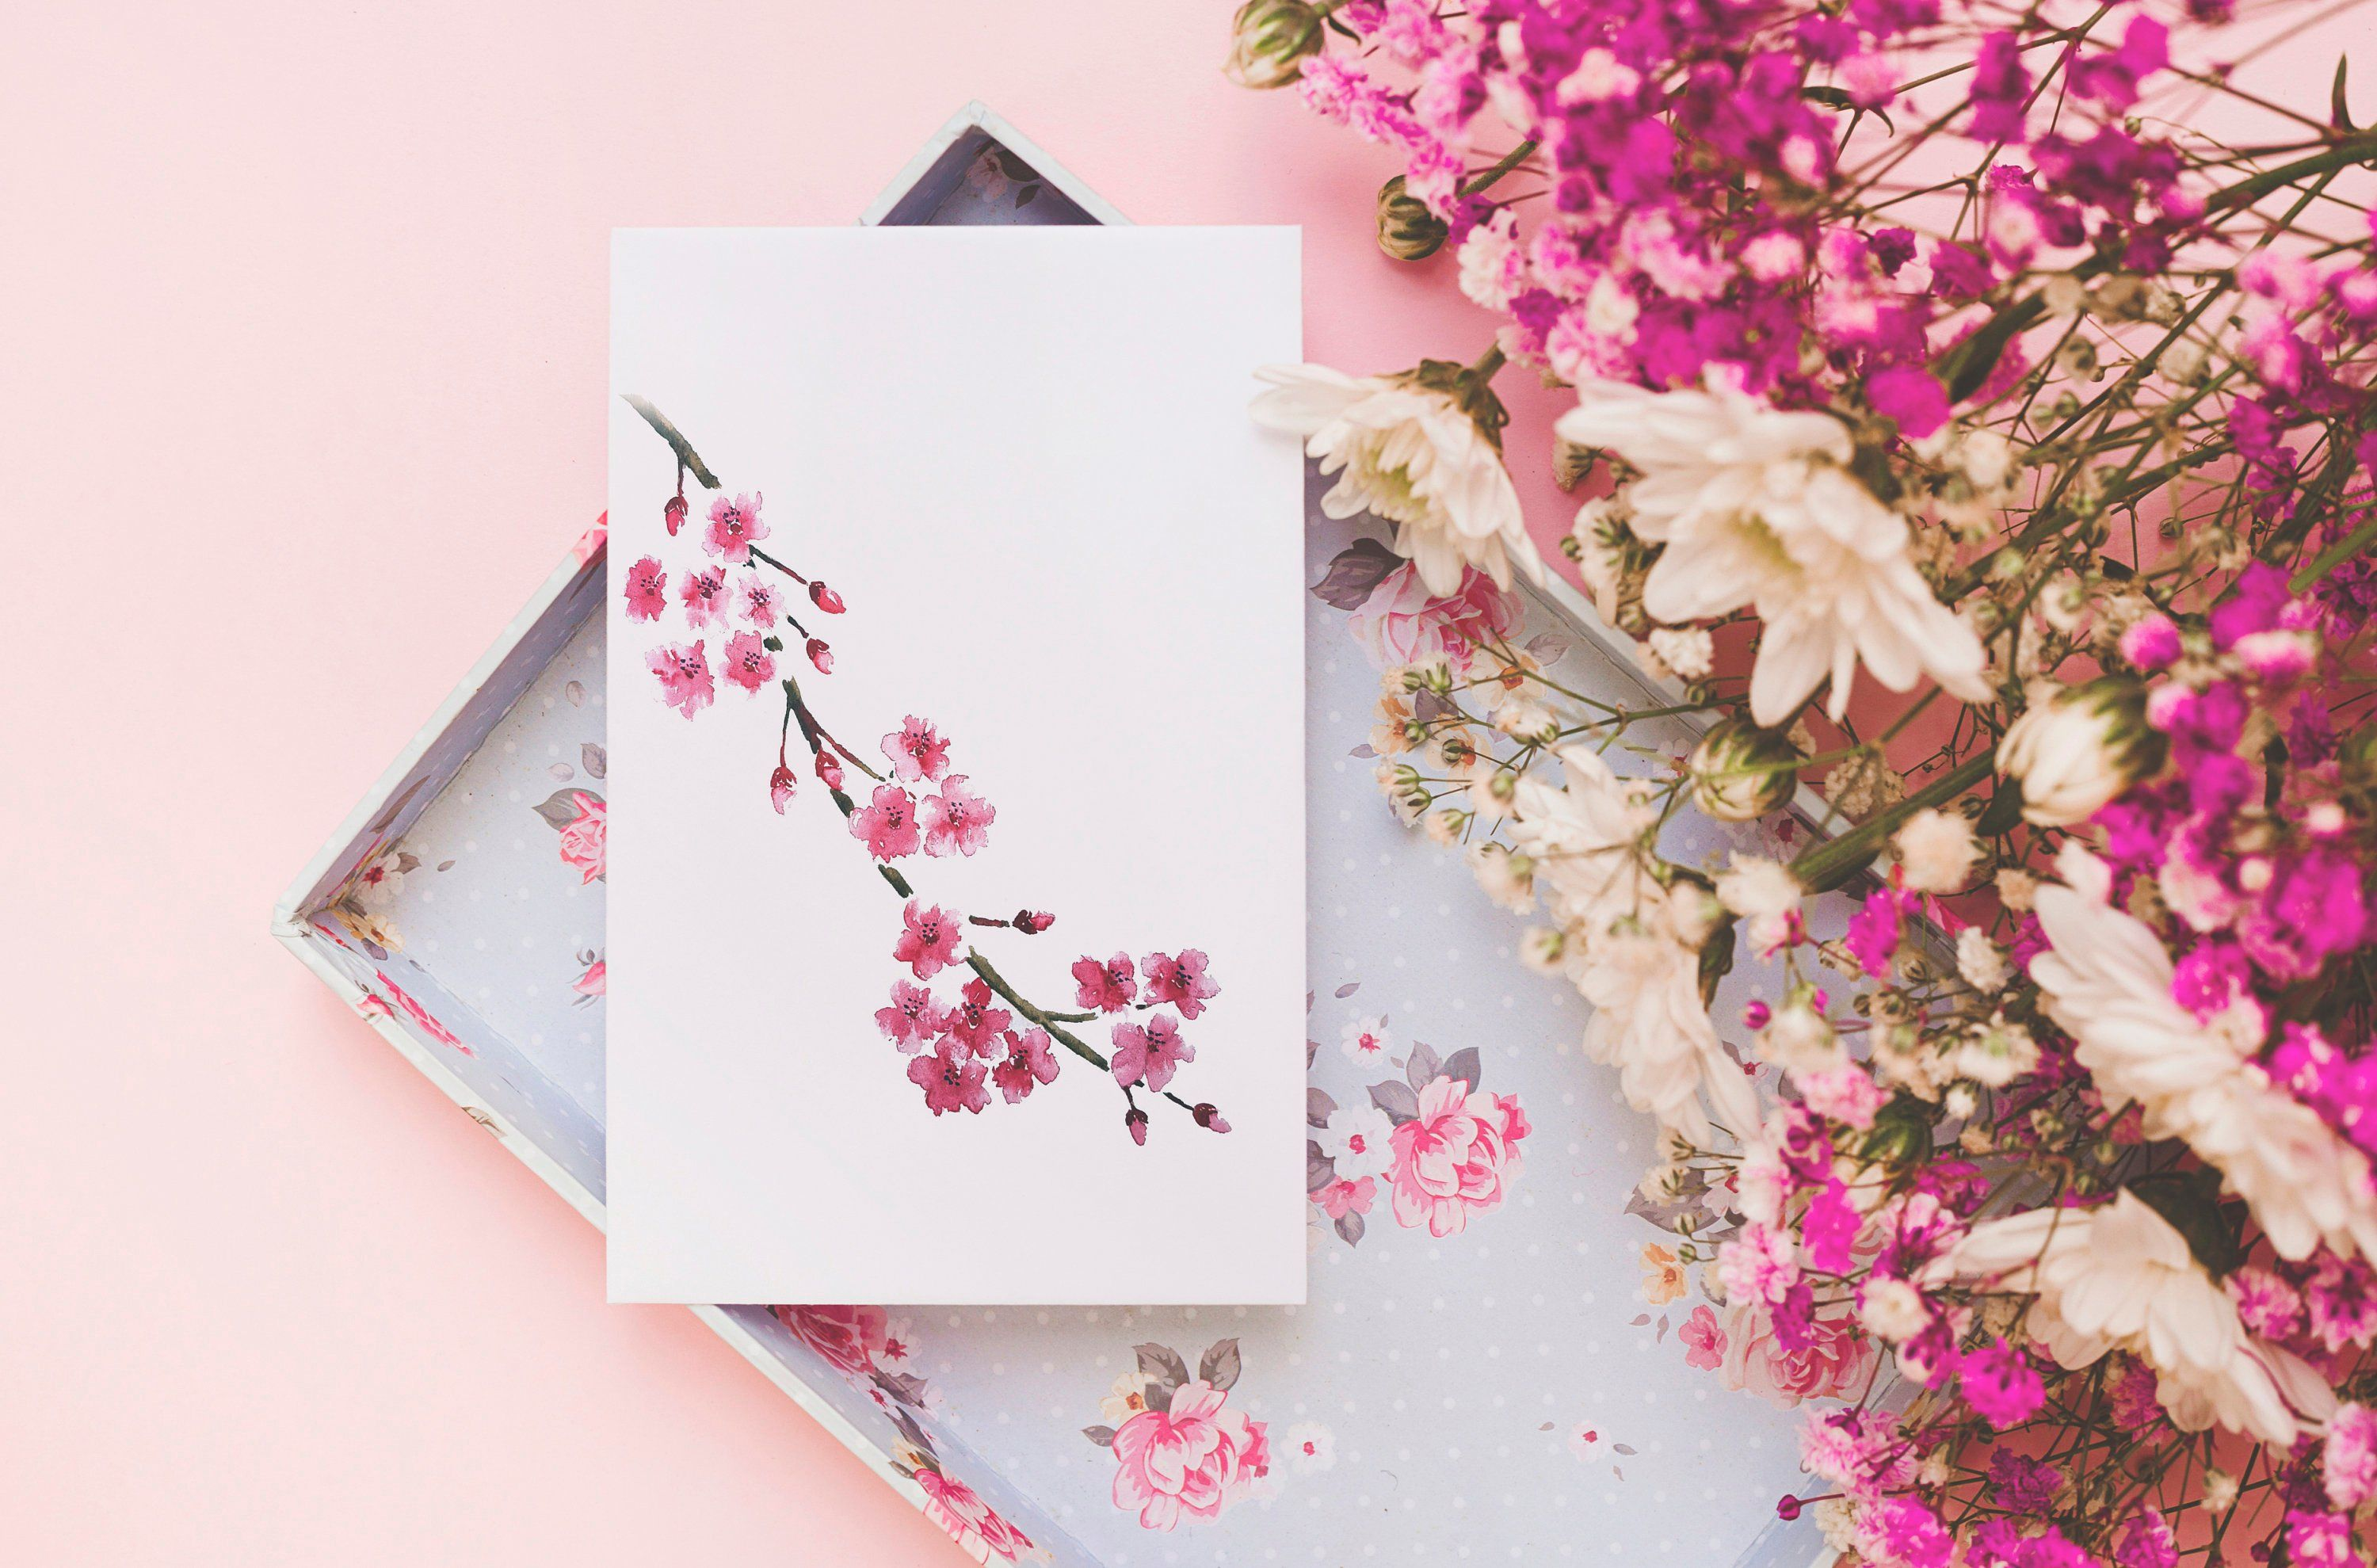 A6 Cherry Blossom Greetings Card By Sarahjaneartuk On Etsy